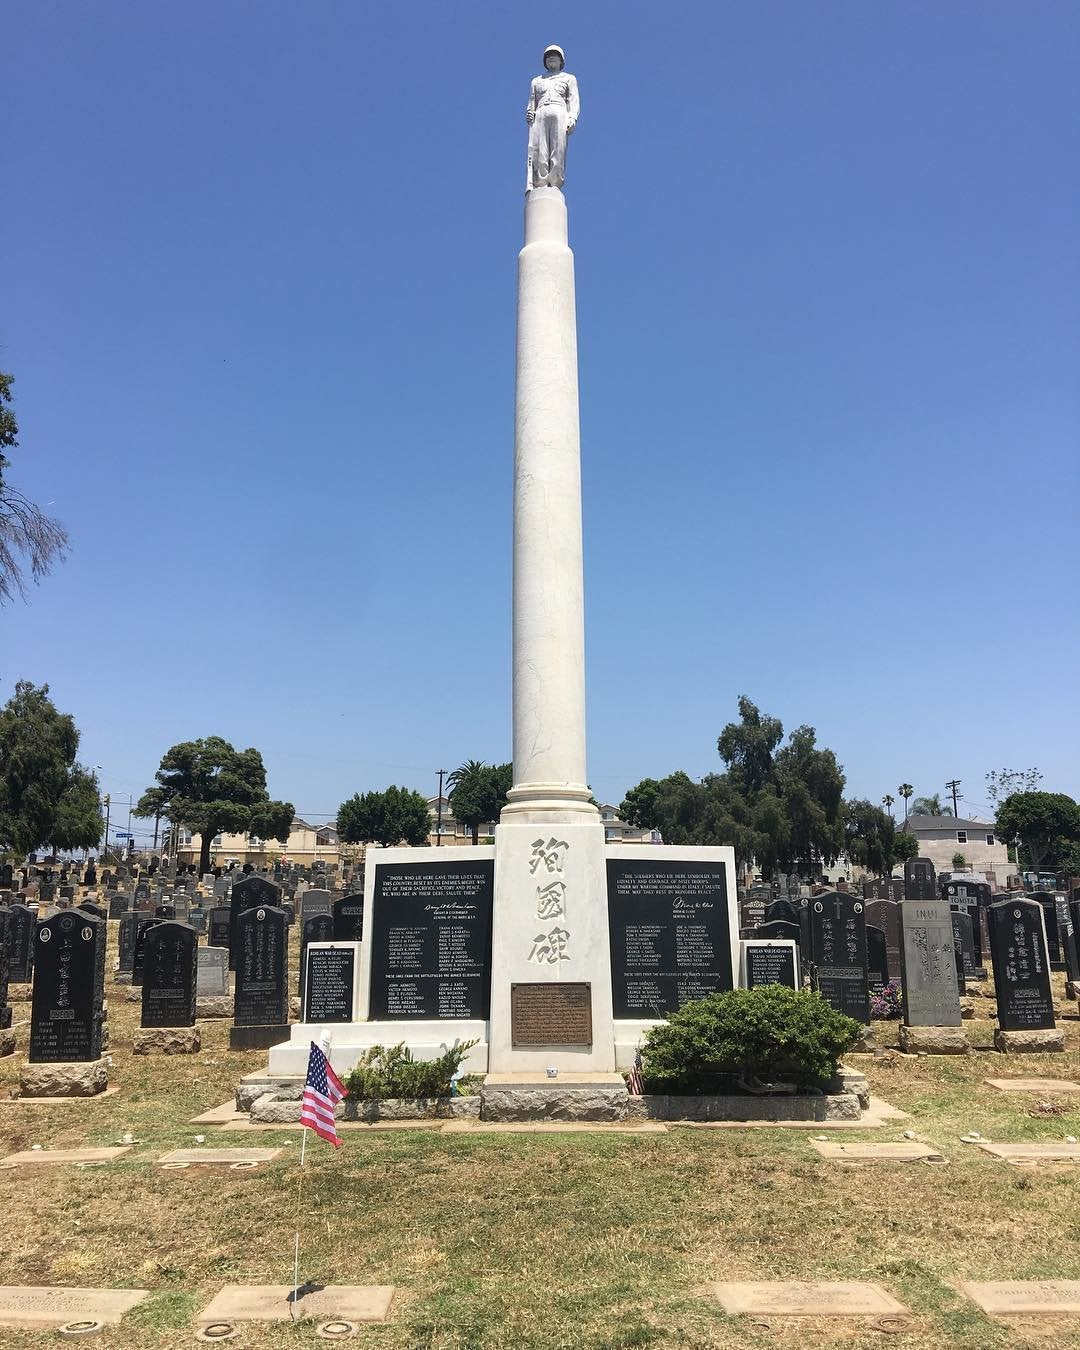 Monument to the 442nd Infantry Regimental Combat Team at Evergreen Cemetery in Boyle Heights